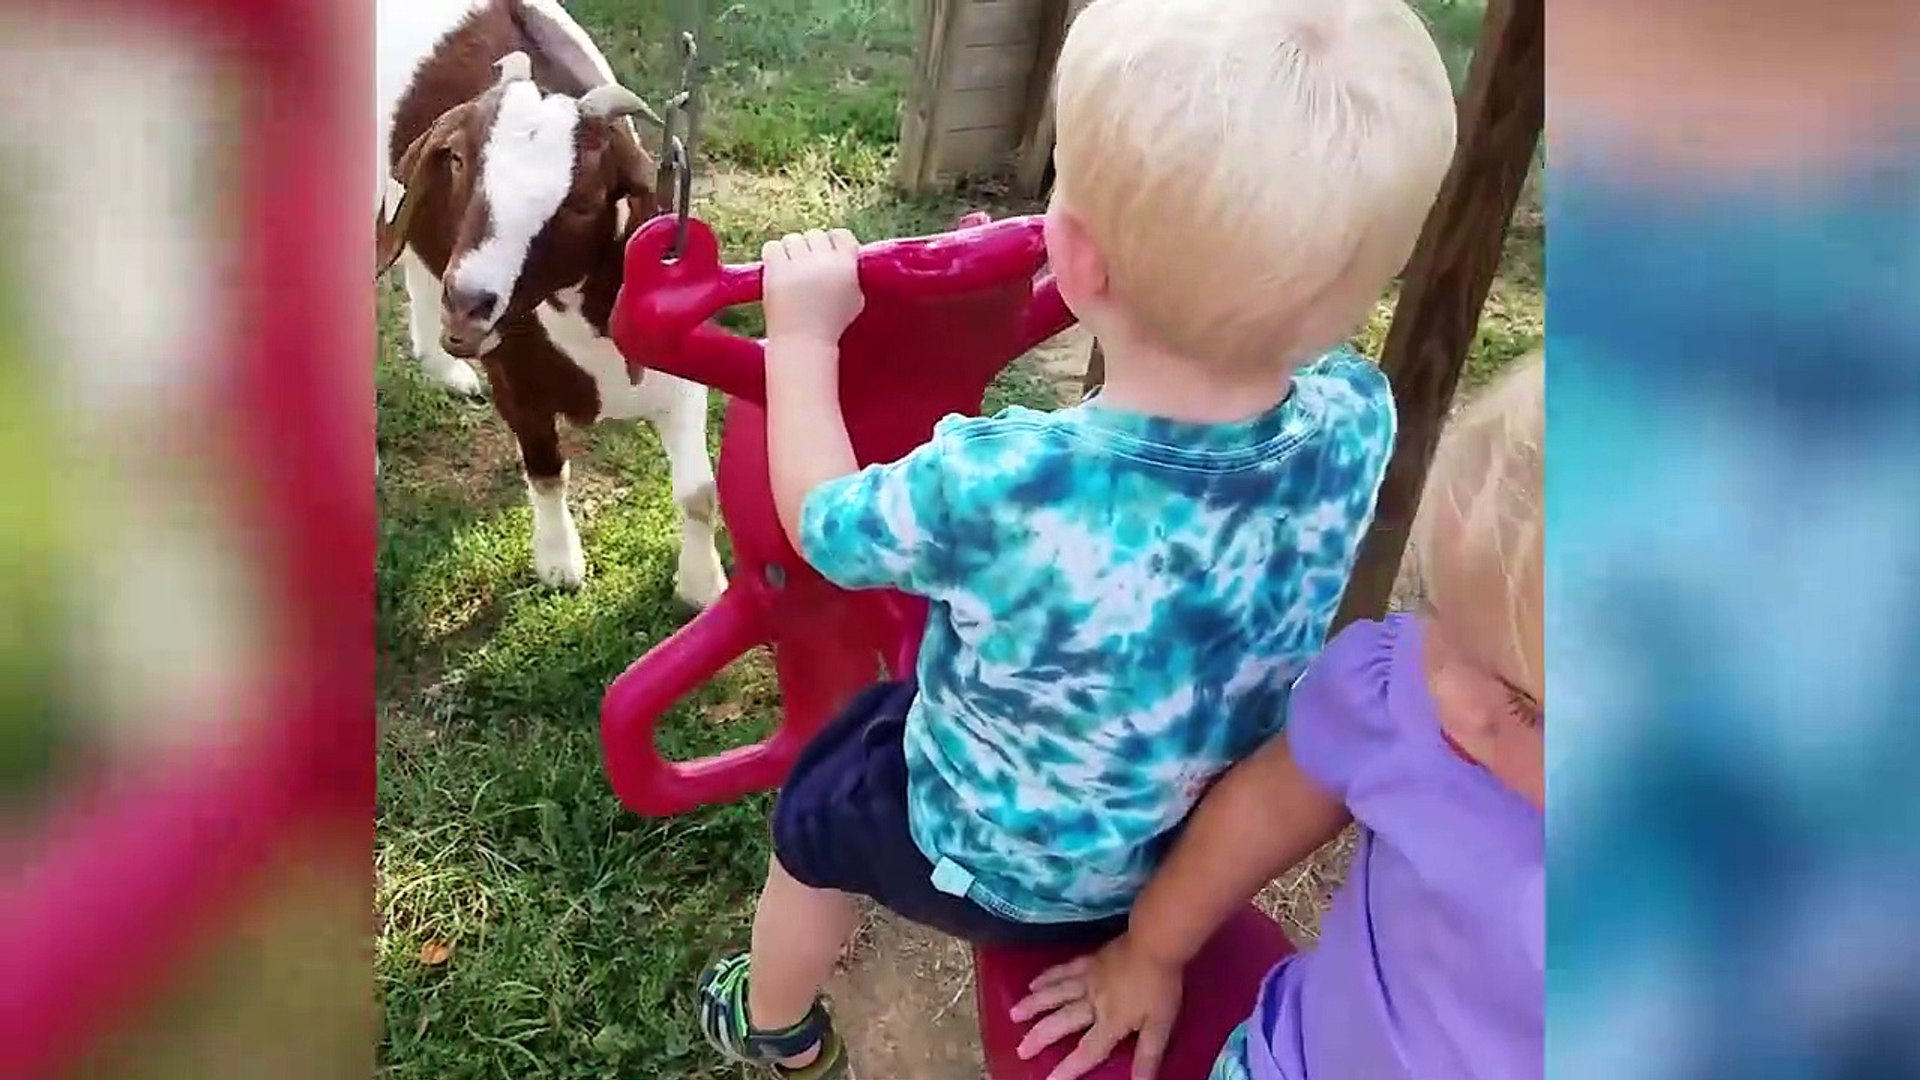 The Funniest Pets Meet The Cutest Kids - Babies of 2017 Weekly Compilation - Funny Pet Videos